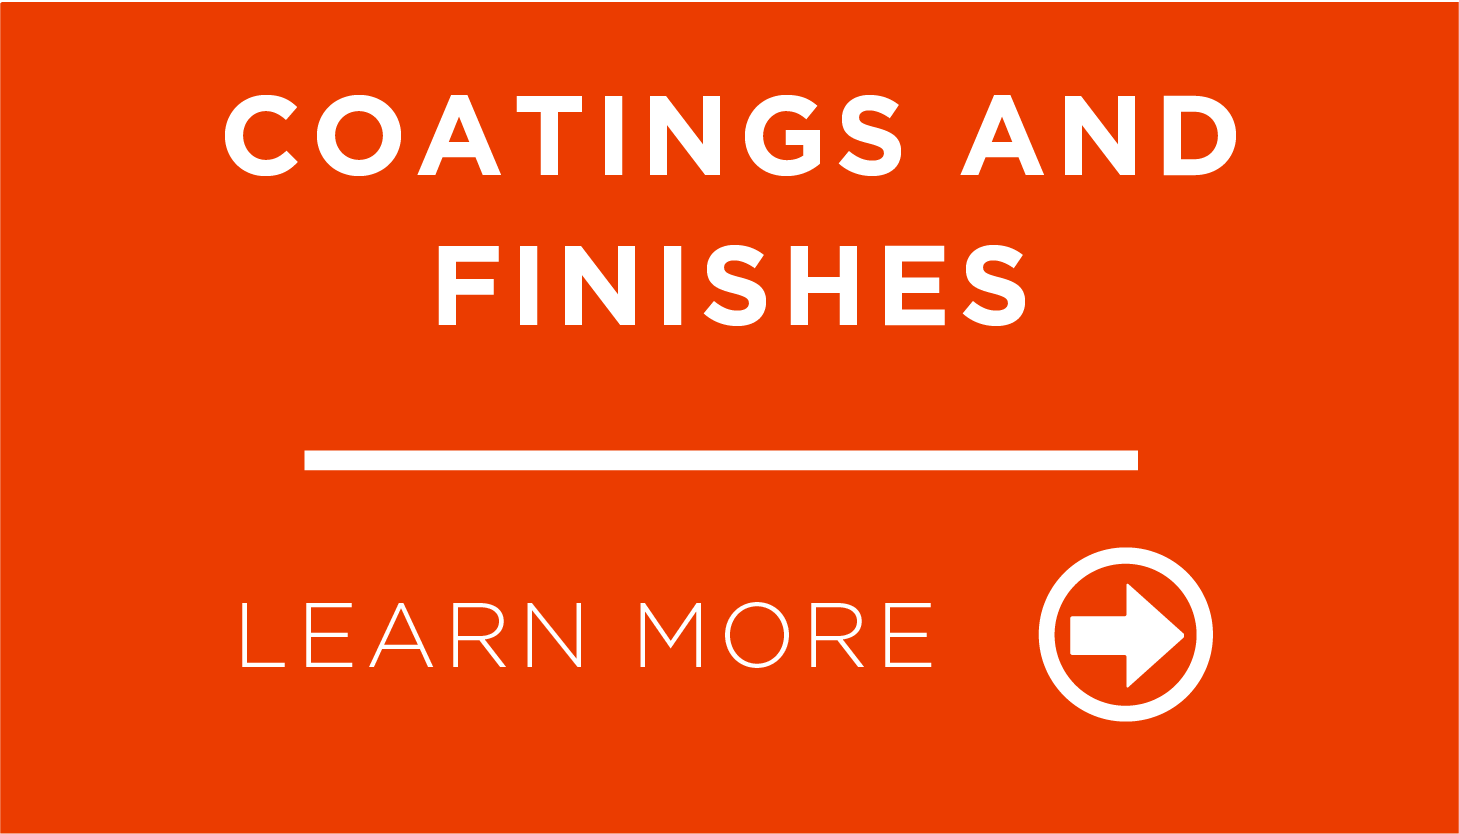 Coatings and Finishes